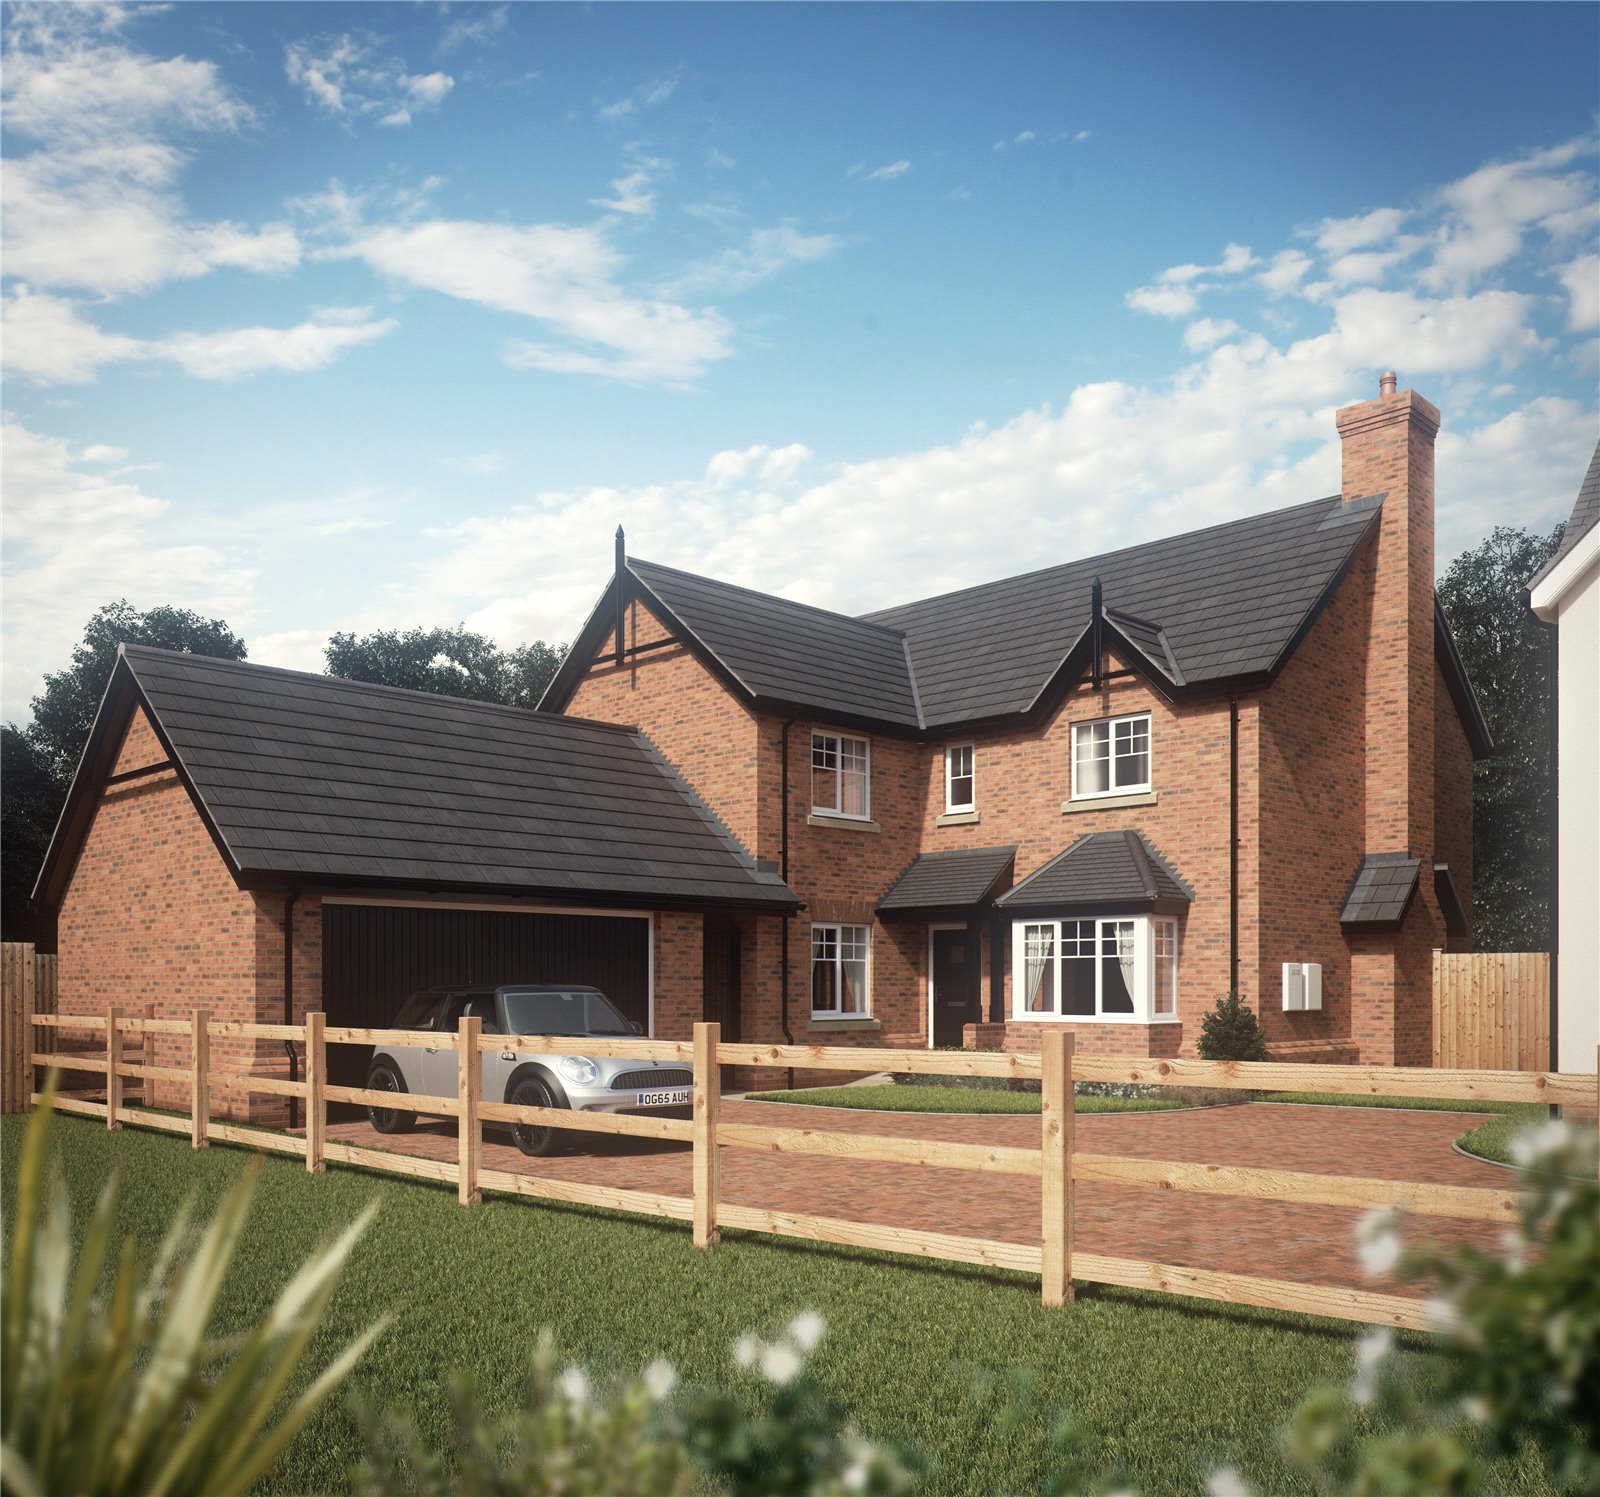 Plot 6, The Exeter, Chester Road, Hinstock, Shropshire, TF9